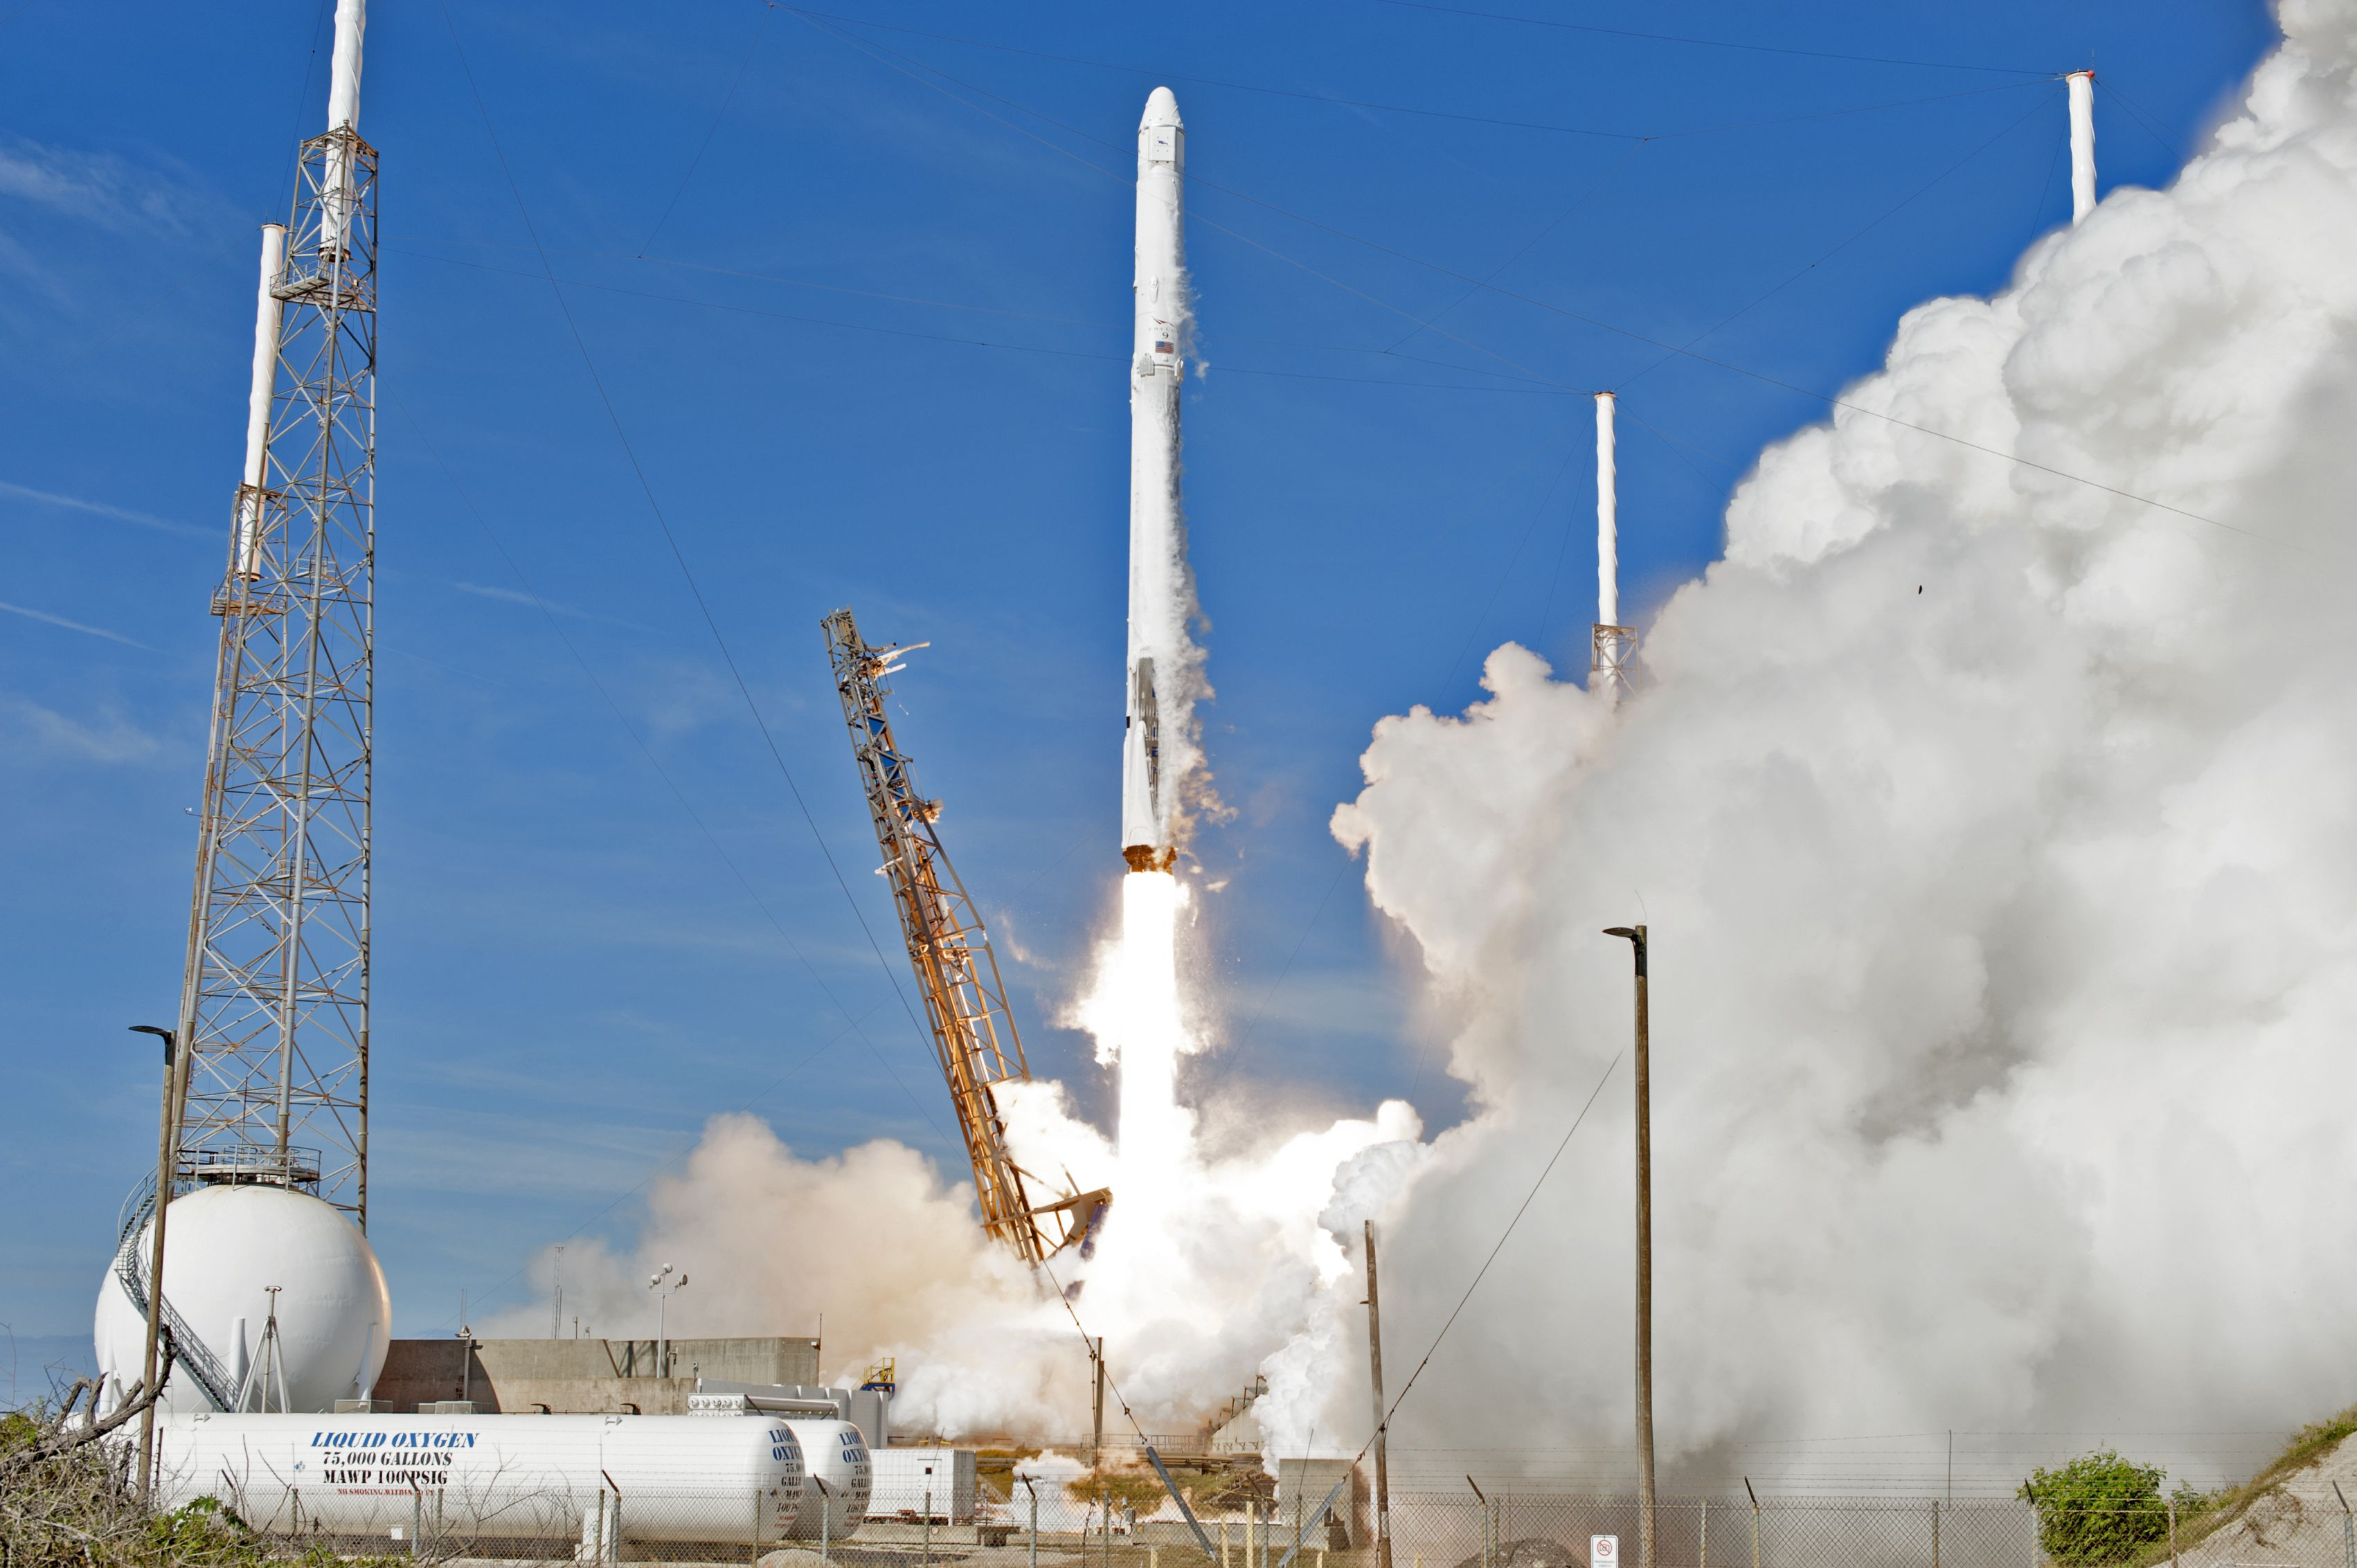 Spacex Return To Flight News.html